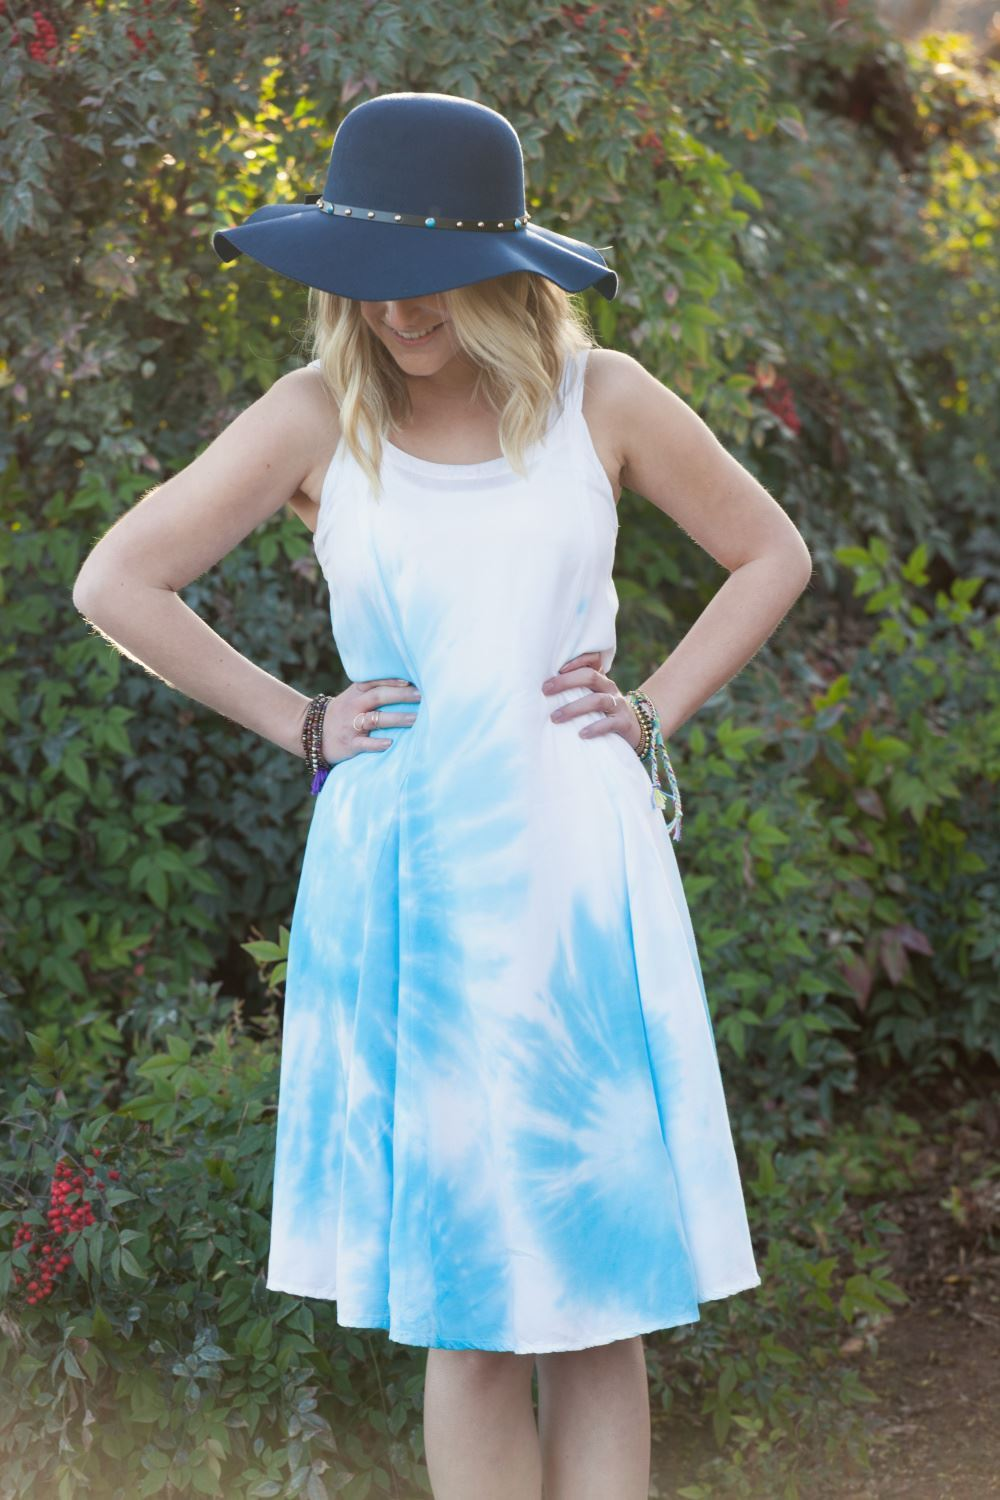 Bullseye Pastel Tie Dye Dress